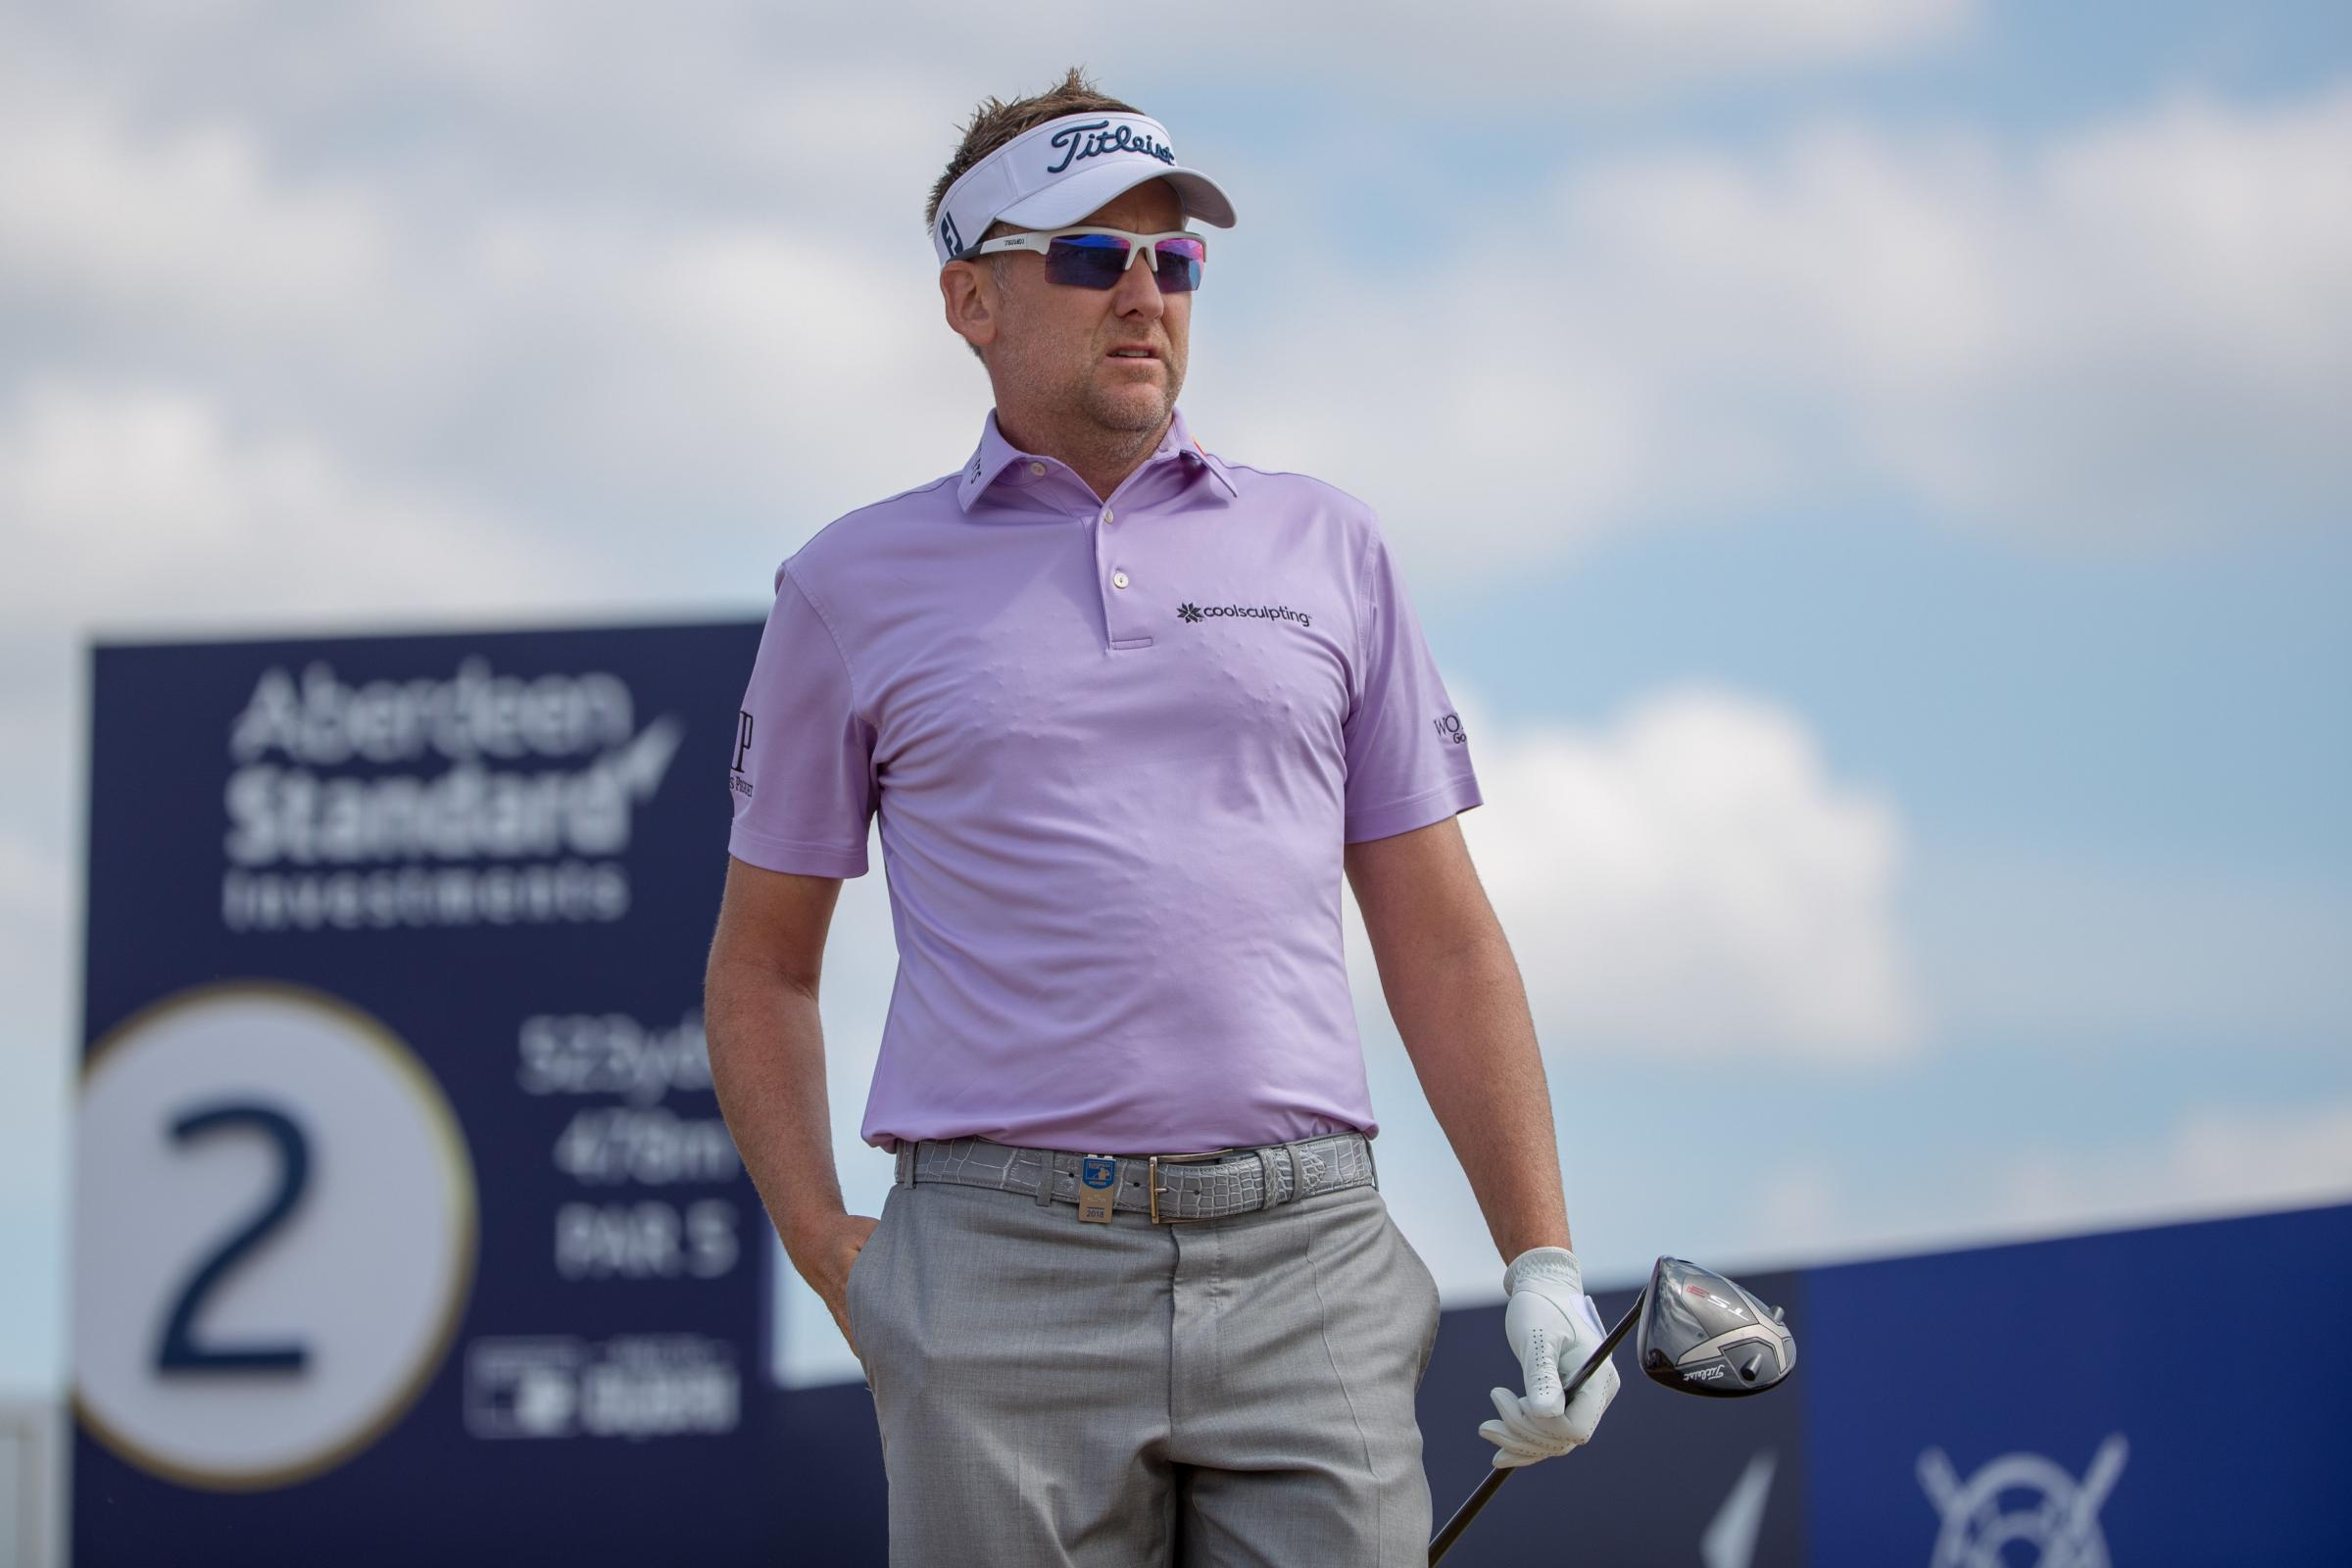 Ian Poulter tees off at the 2nd hole during day three of the Aberdeen Standard Investment Scottish Open at Gullane Golf Club, East Lothian. PRESS ASSOCIATION Photo. Picture date: Saturday July 14, 2018. See PA story GOLF Scottish. Photo credit should read